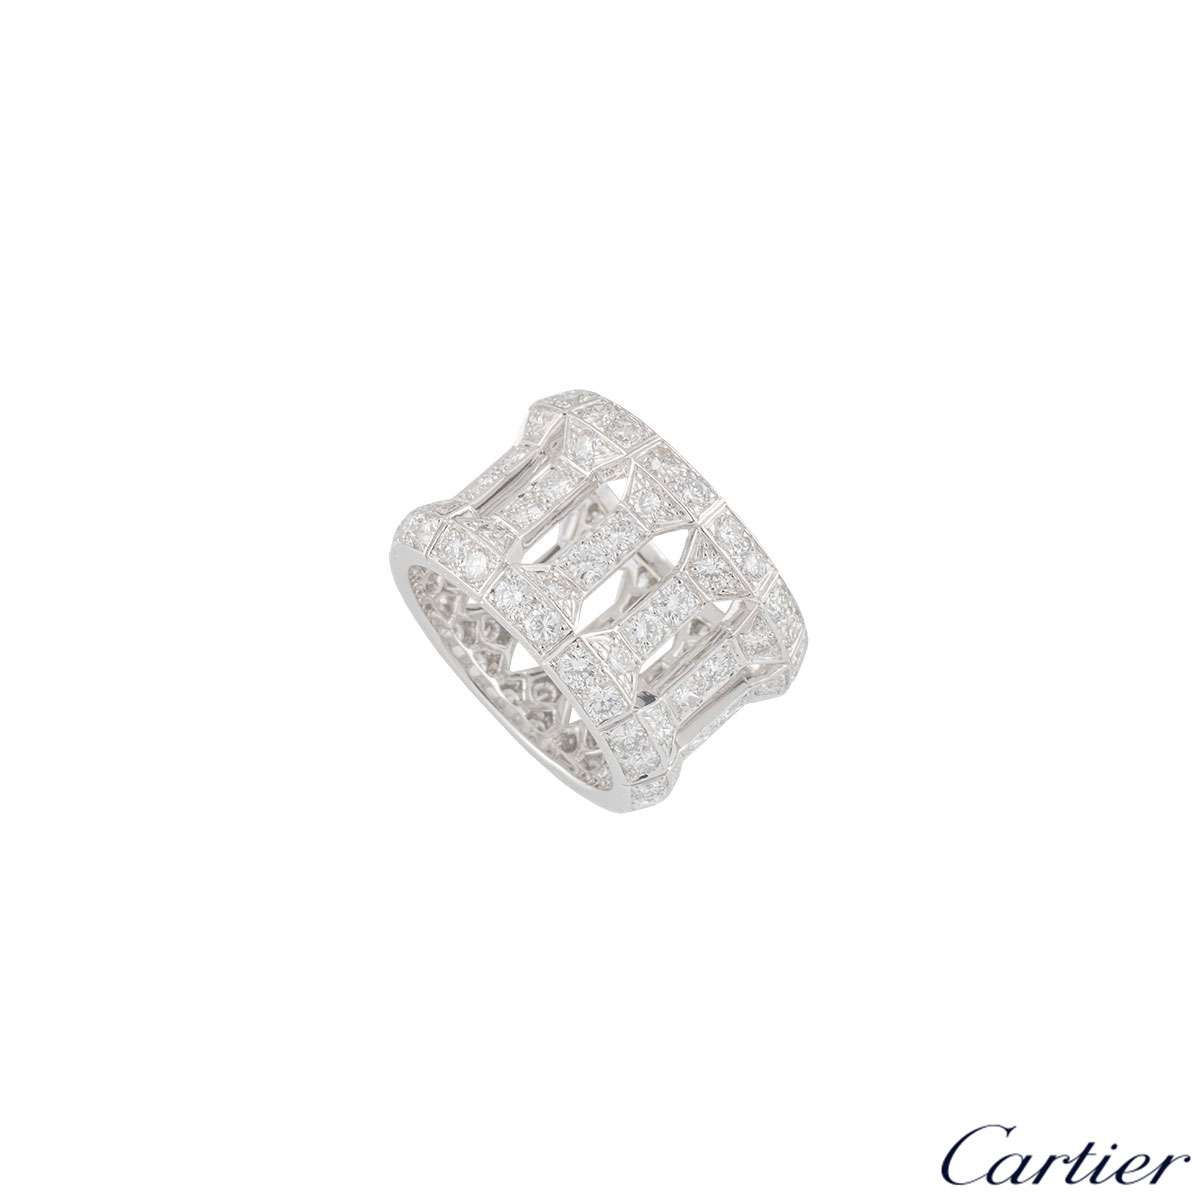 Cartier White Gold Diamond Dress Ring